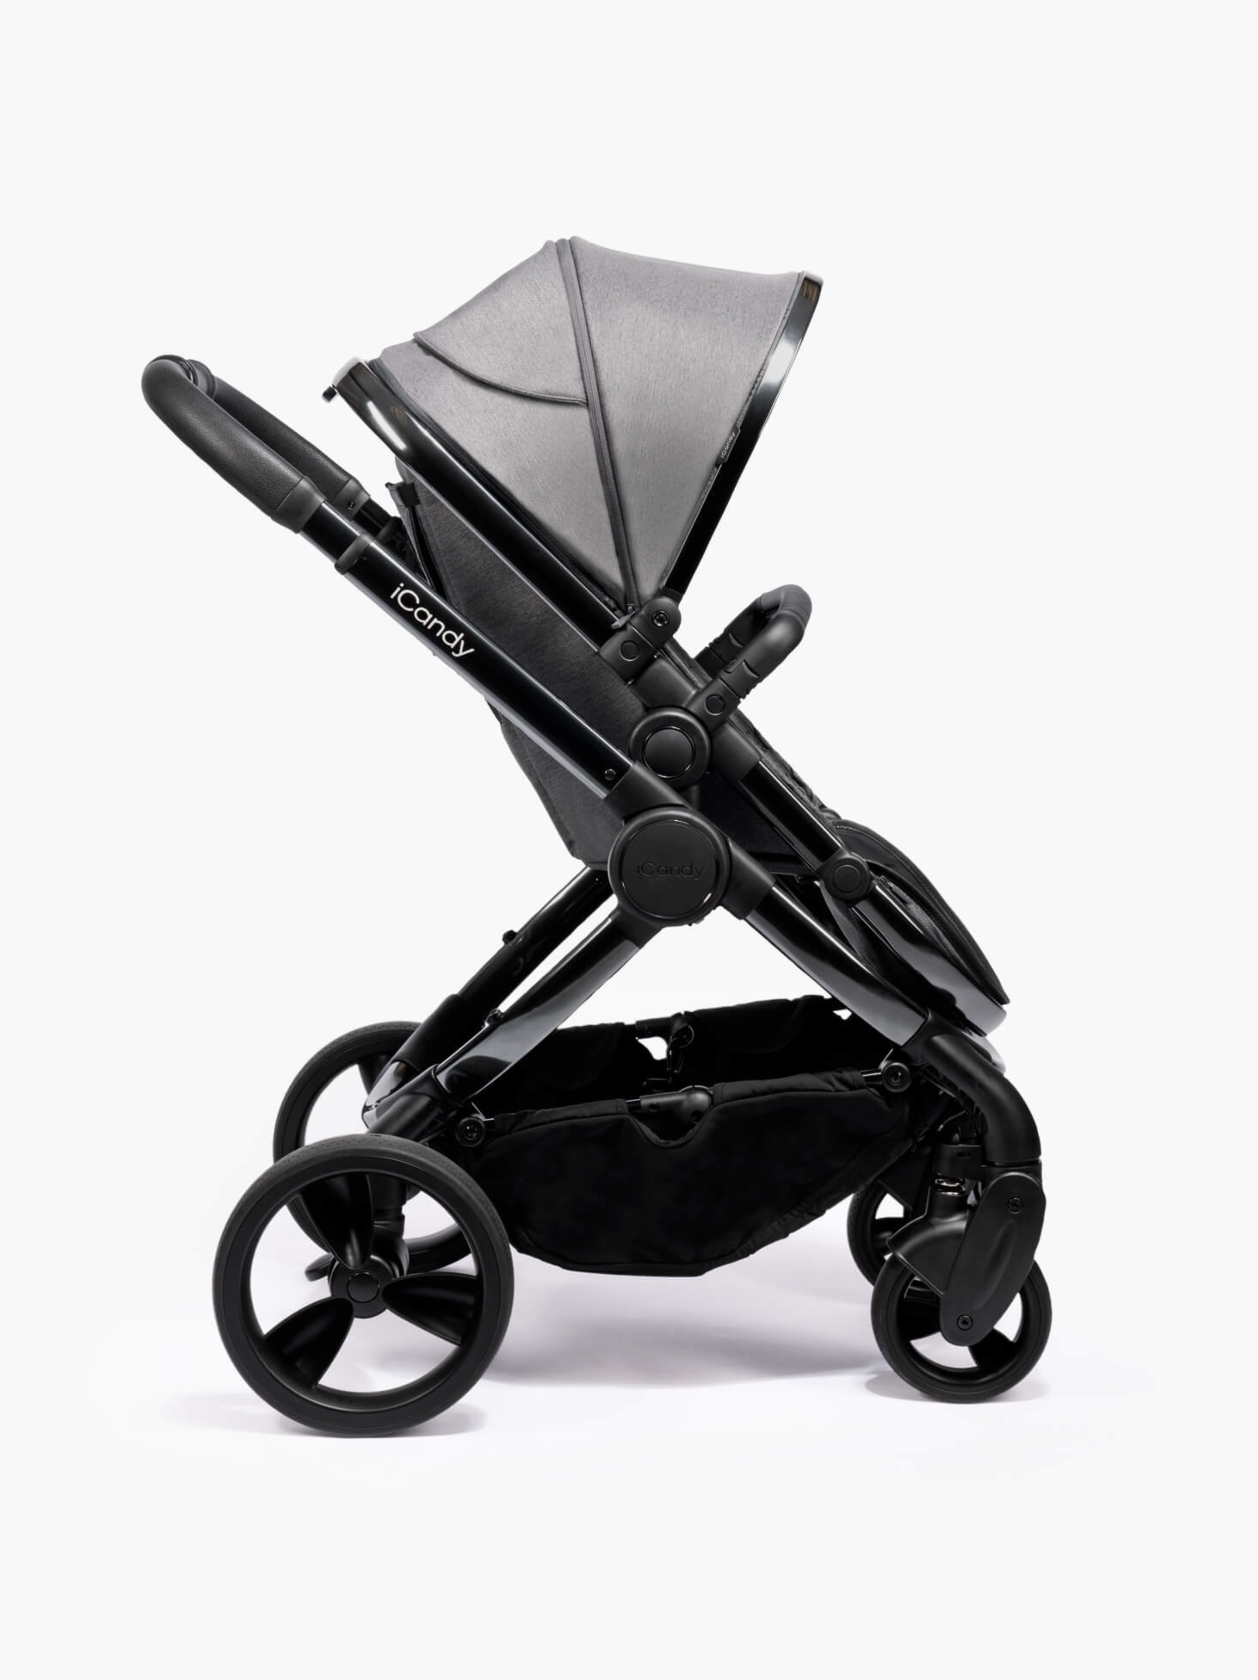 Peach Pushchair and Carrycot With Bag, Duo Pod & Ride-On Board